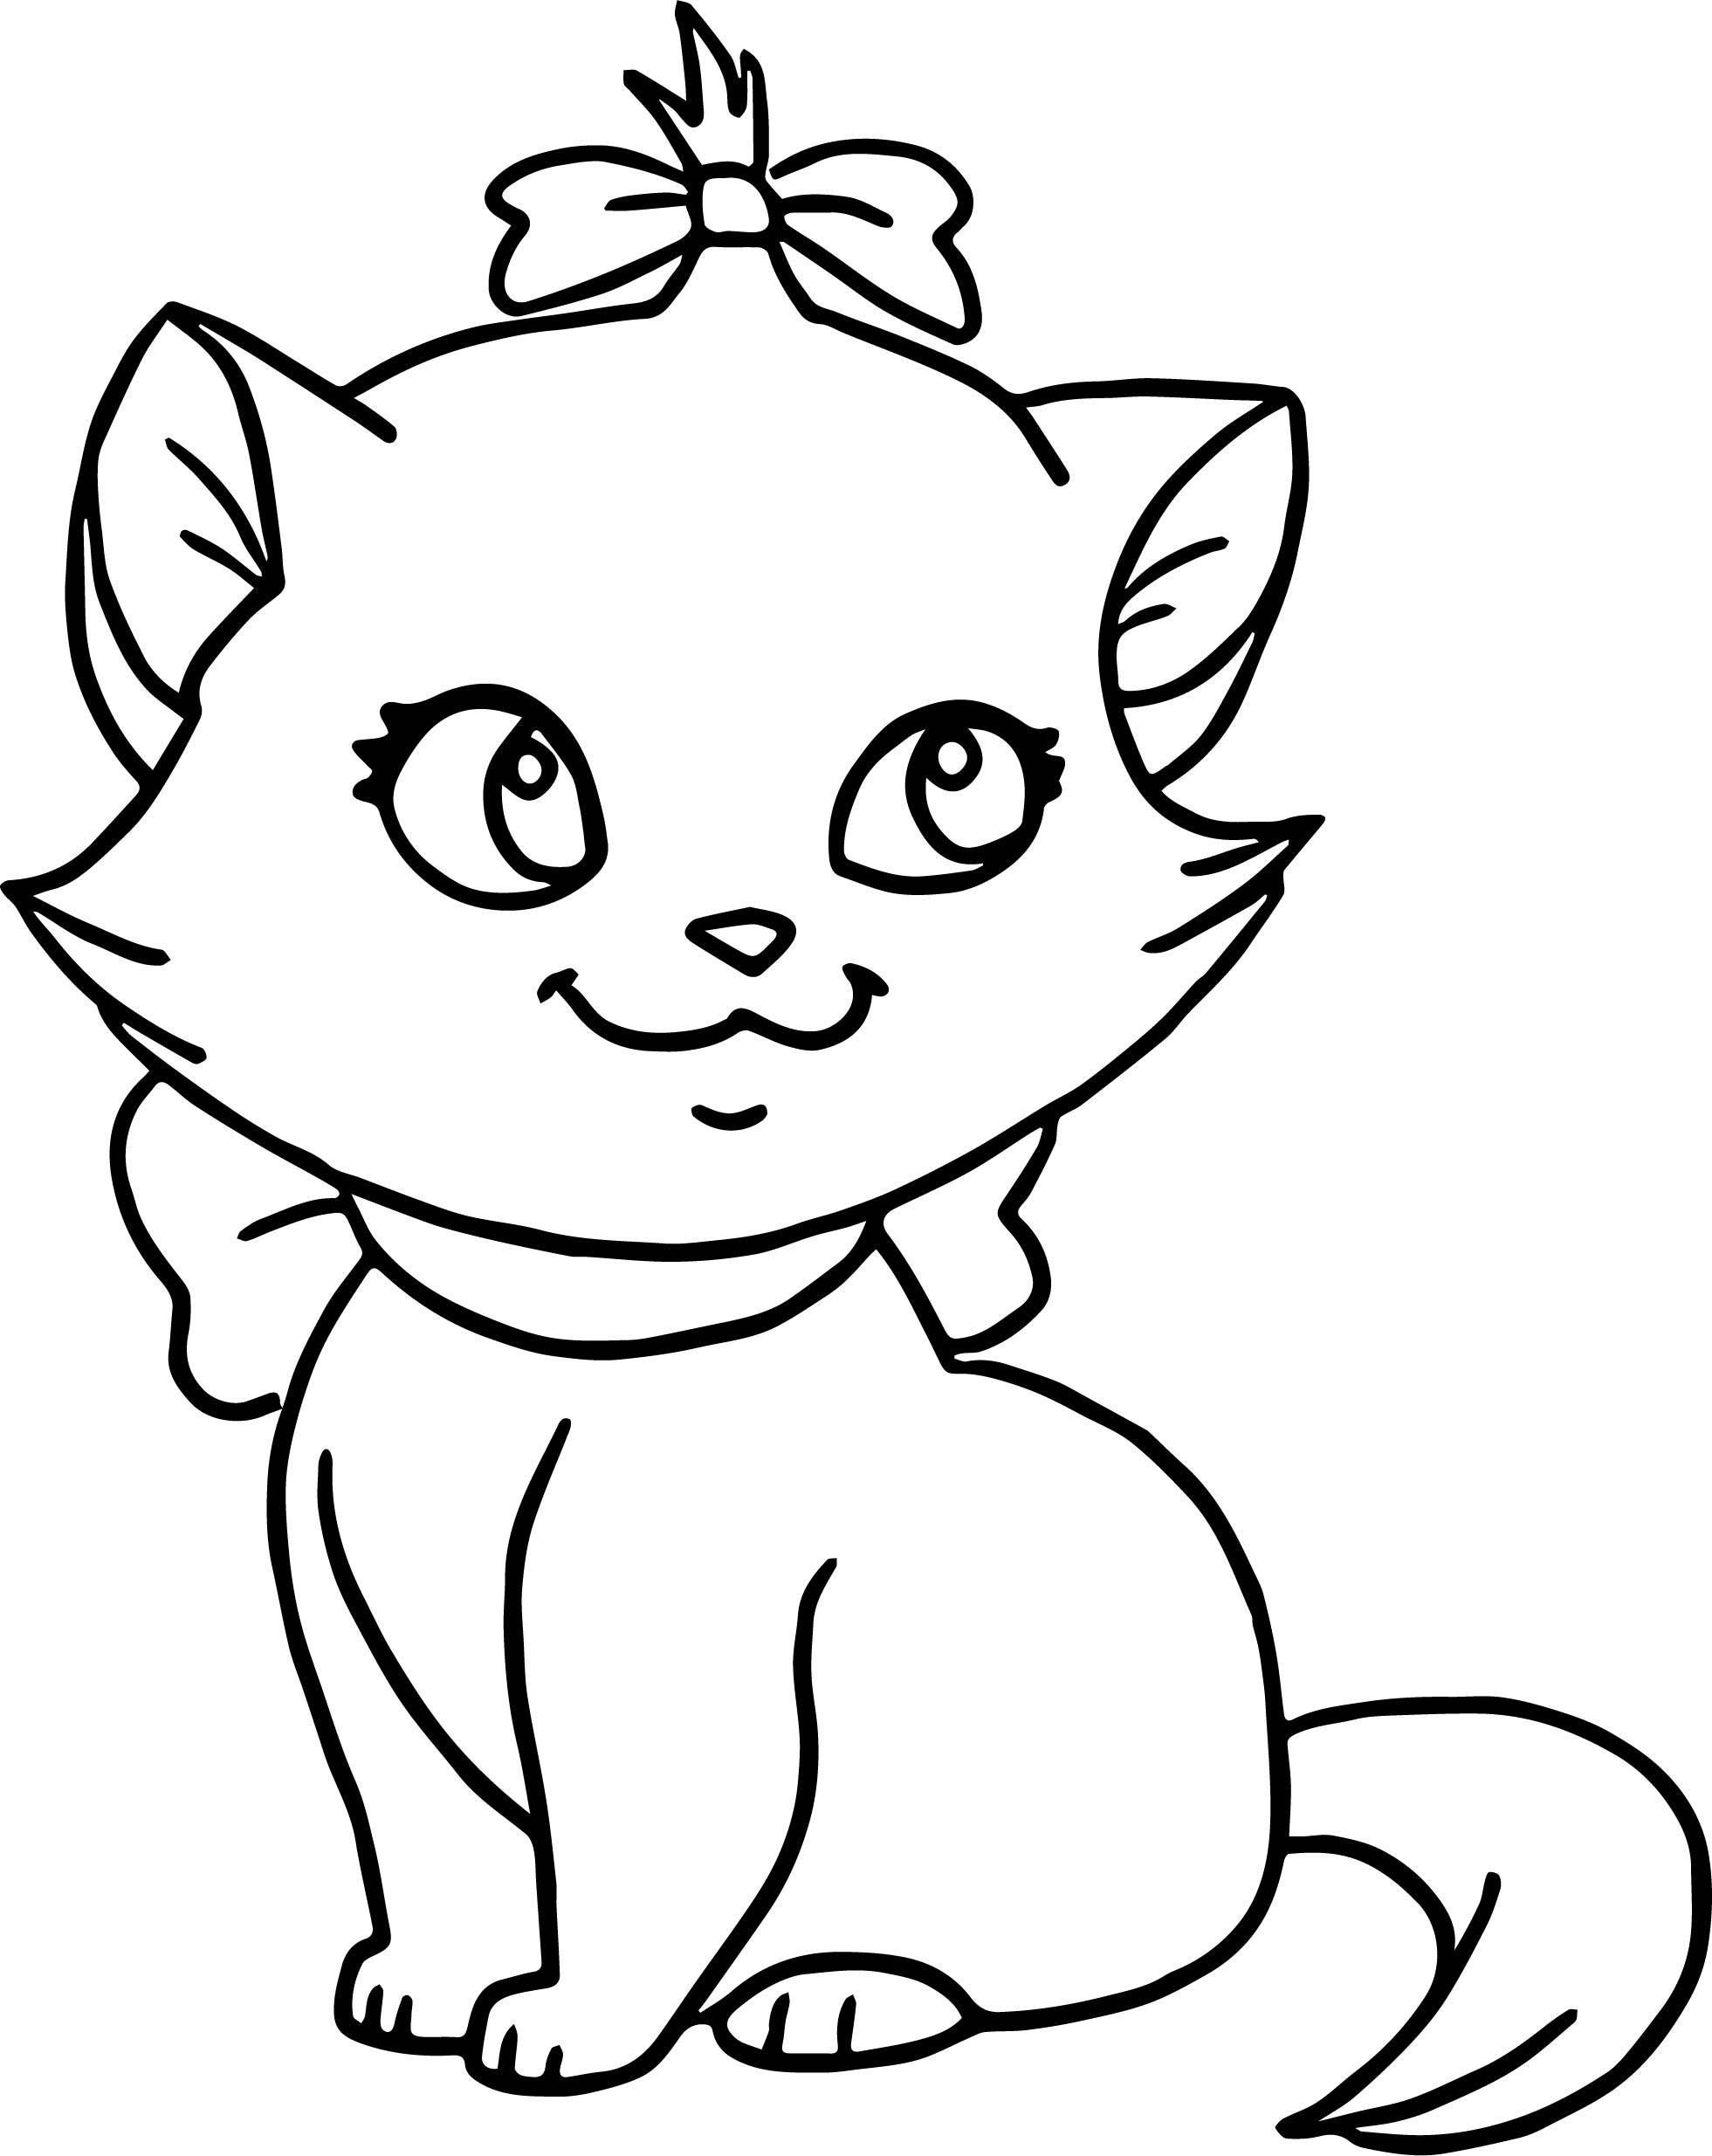 Kitten Coloring Pages For Kids Coloring Pages Coloring Book Puppy And Kitten Coloringages In 2020 Kitten Coloring Book Cat Coloring Page Cat Coloring Book